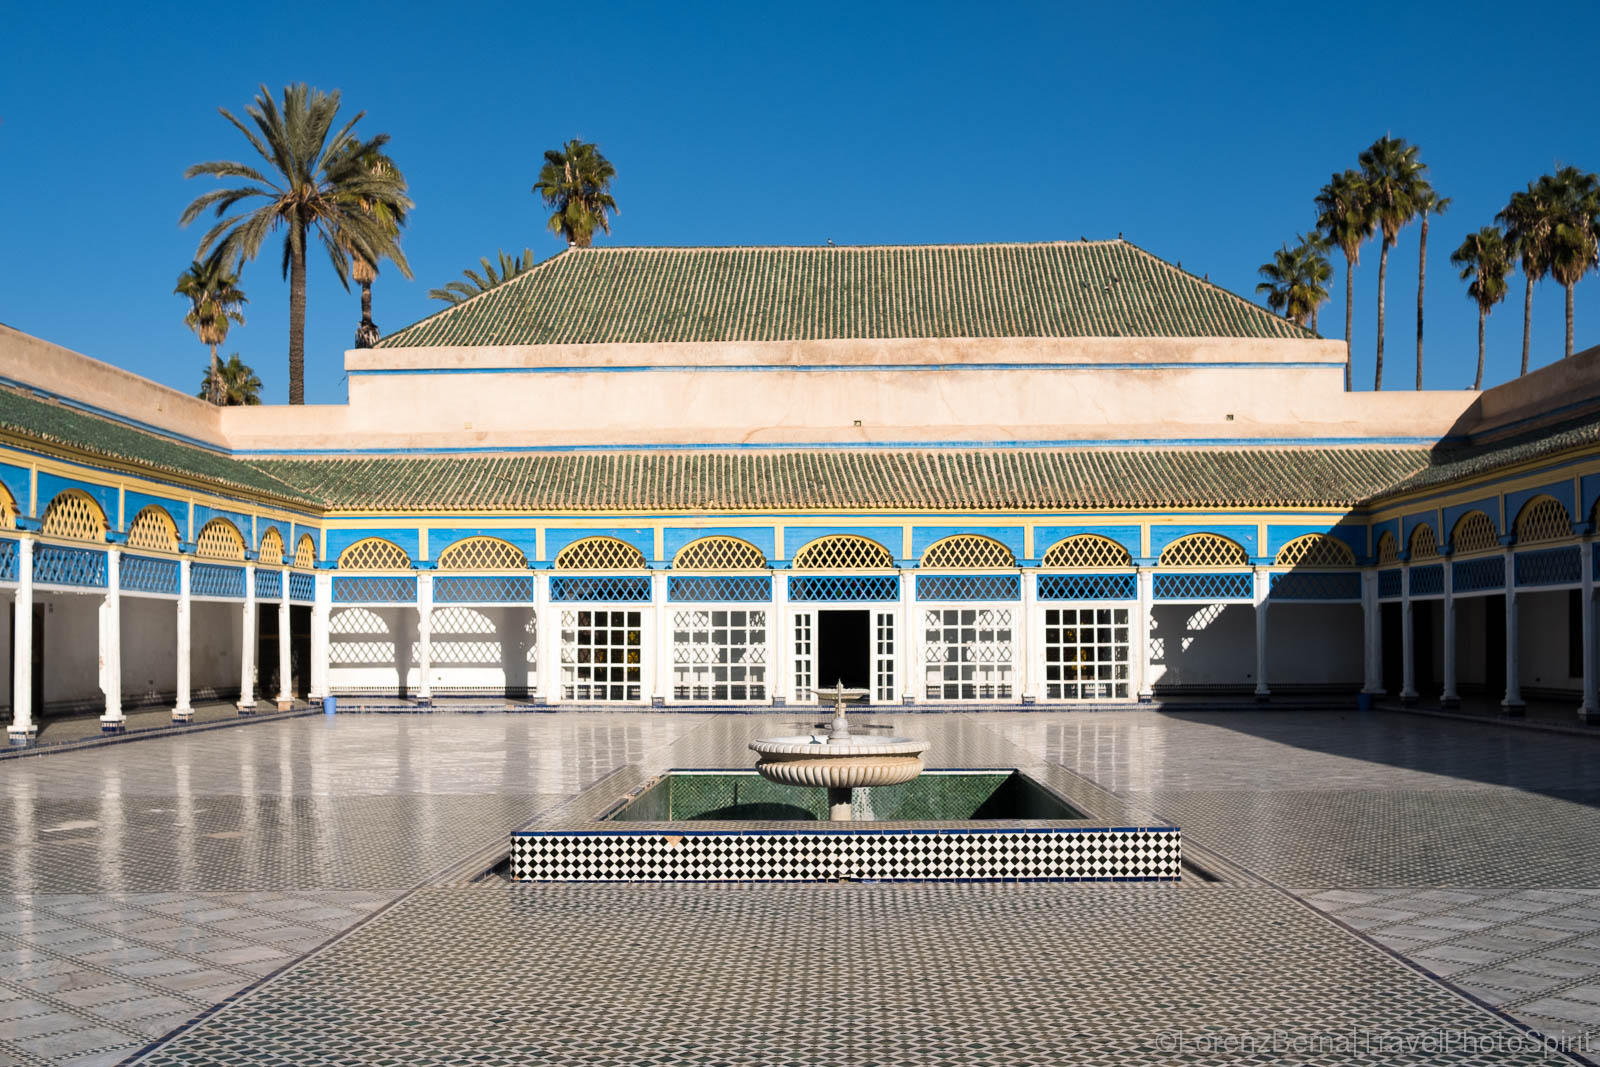 Inside court of the Bahia Palace of Marrakech.